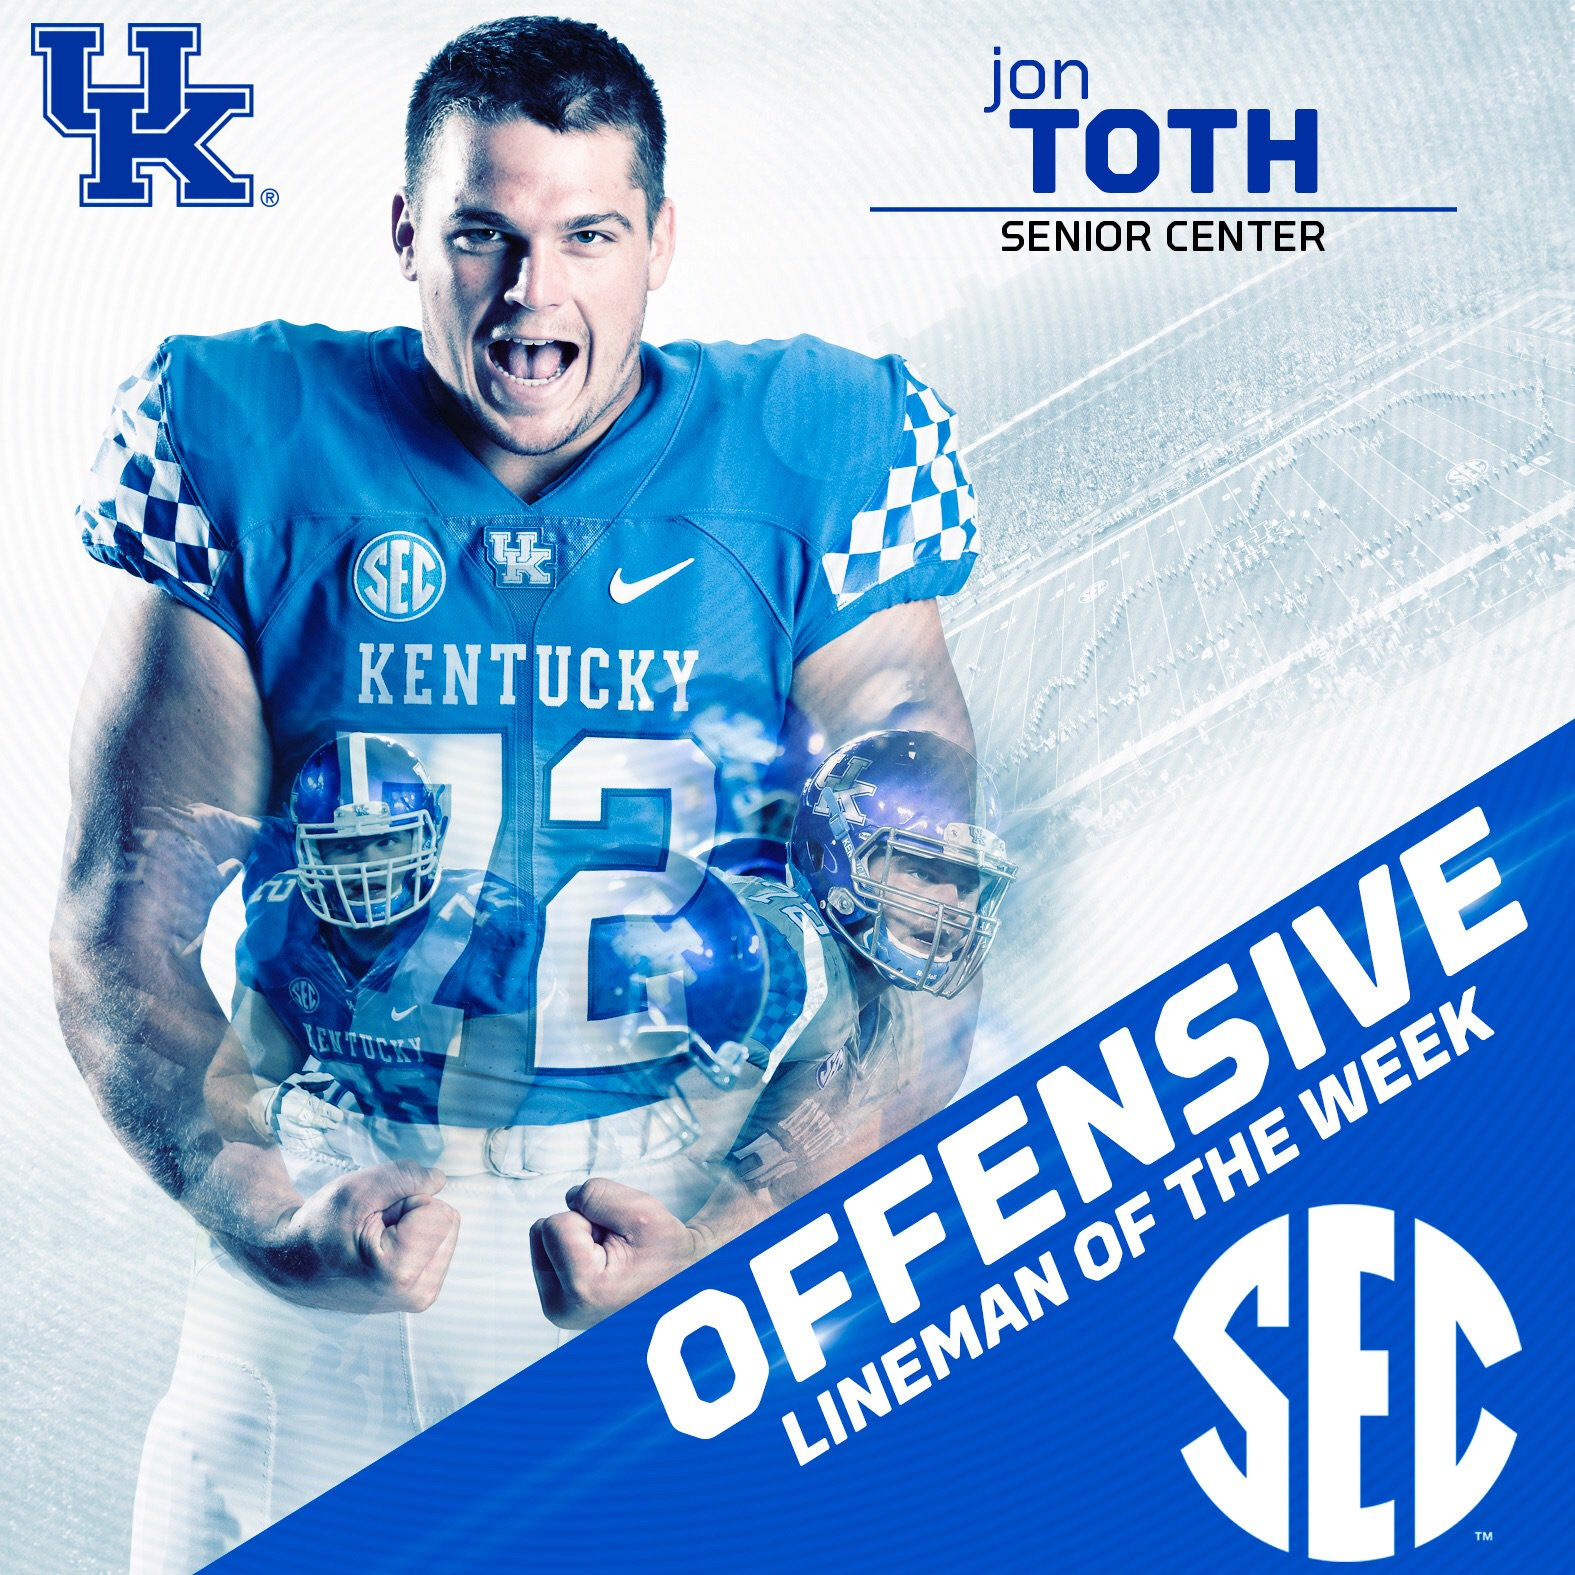 sports shoes 3e54e 8441d Jon Toth named SEC Offensive Lineman of the Week | Kentucky ...